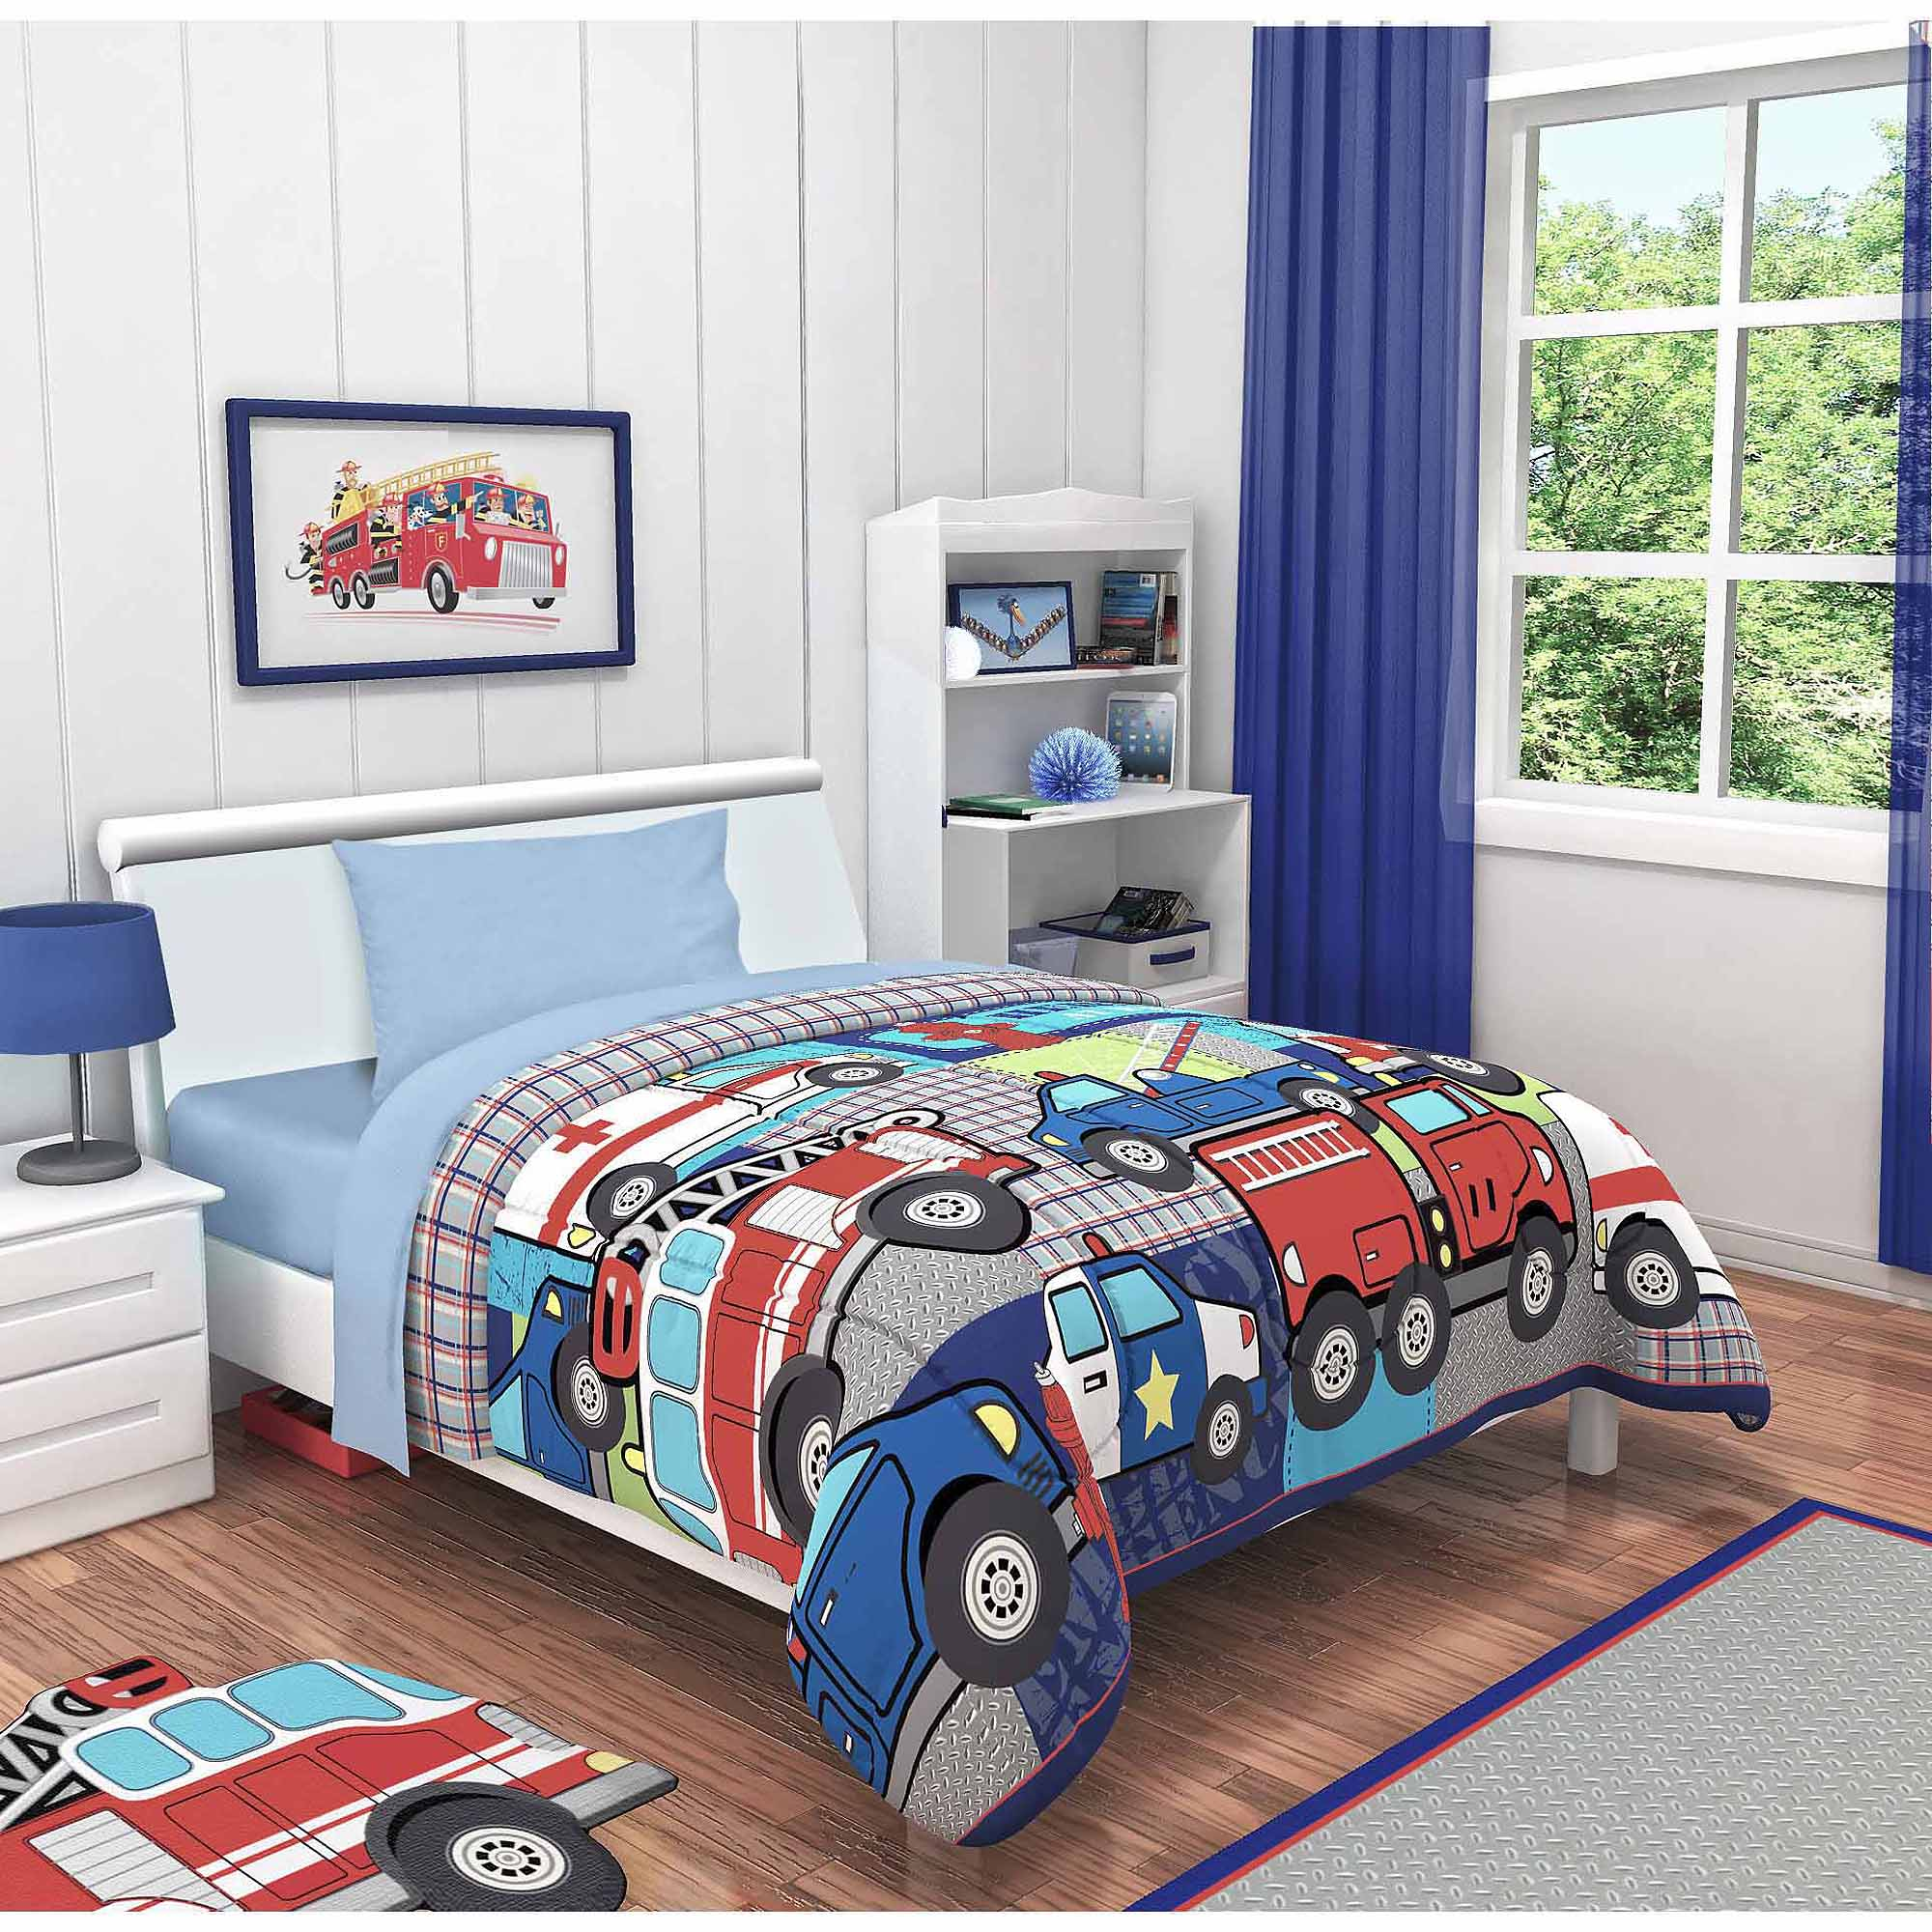 Charming Disney Finding Dory 4 Piece Toddler Bedding Set   Walmart.com